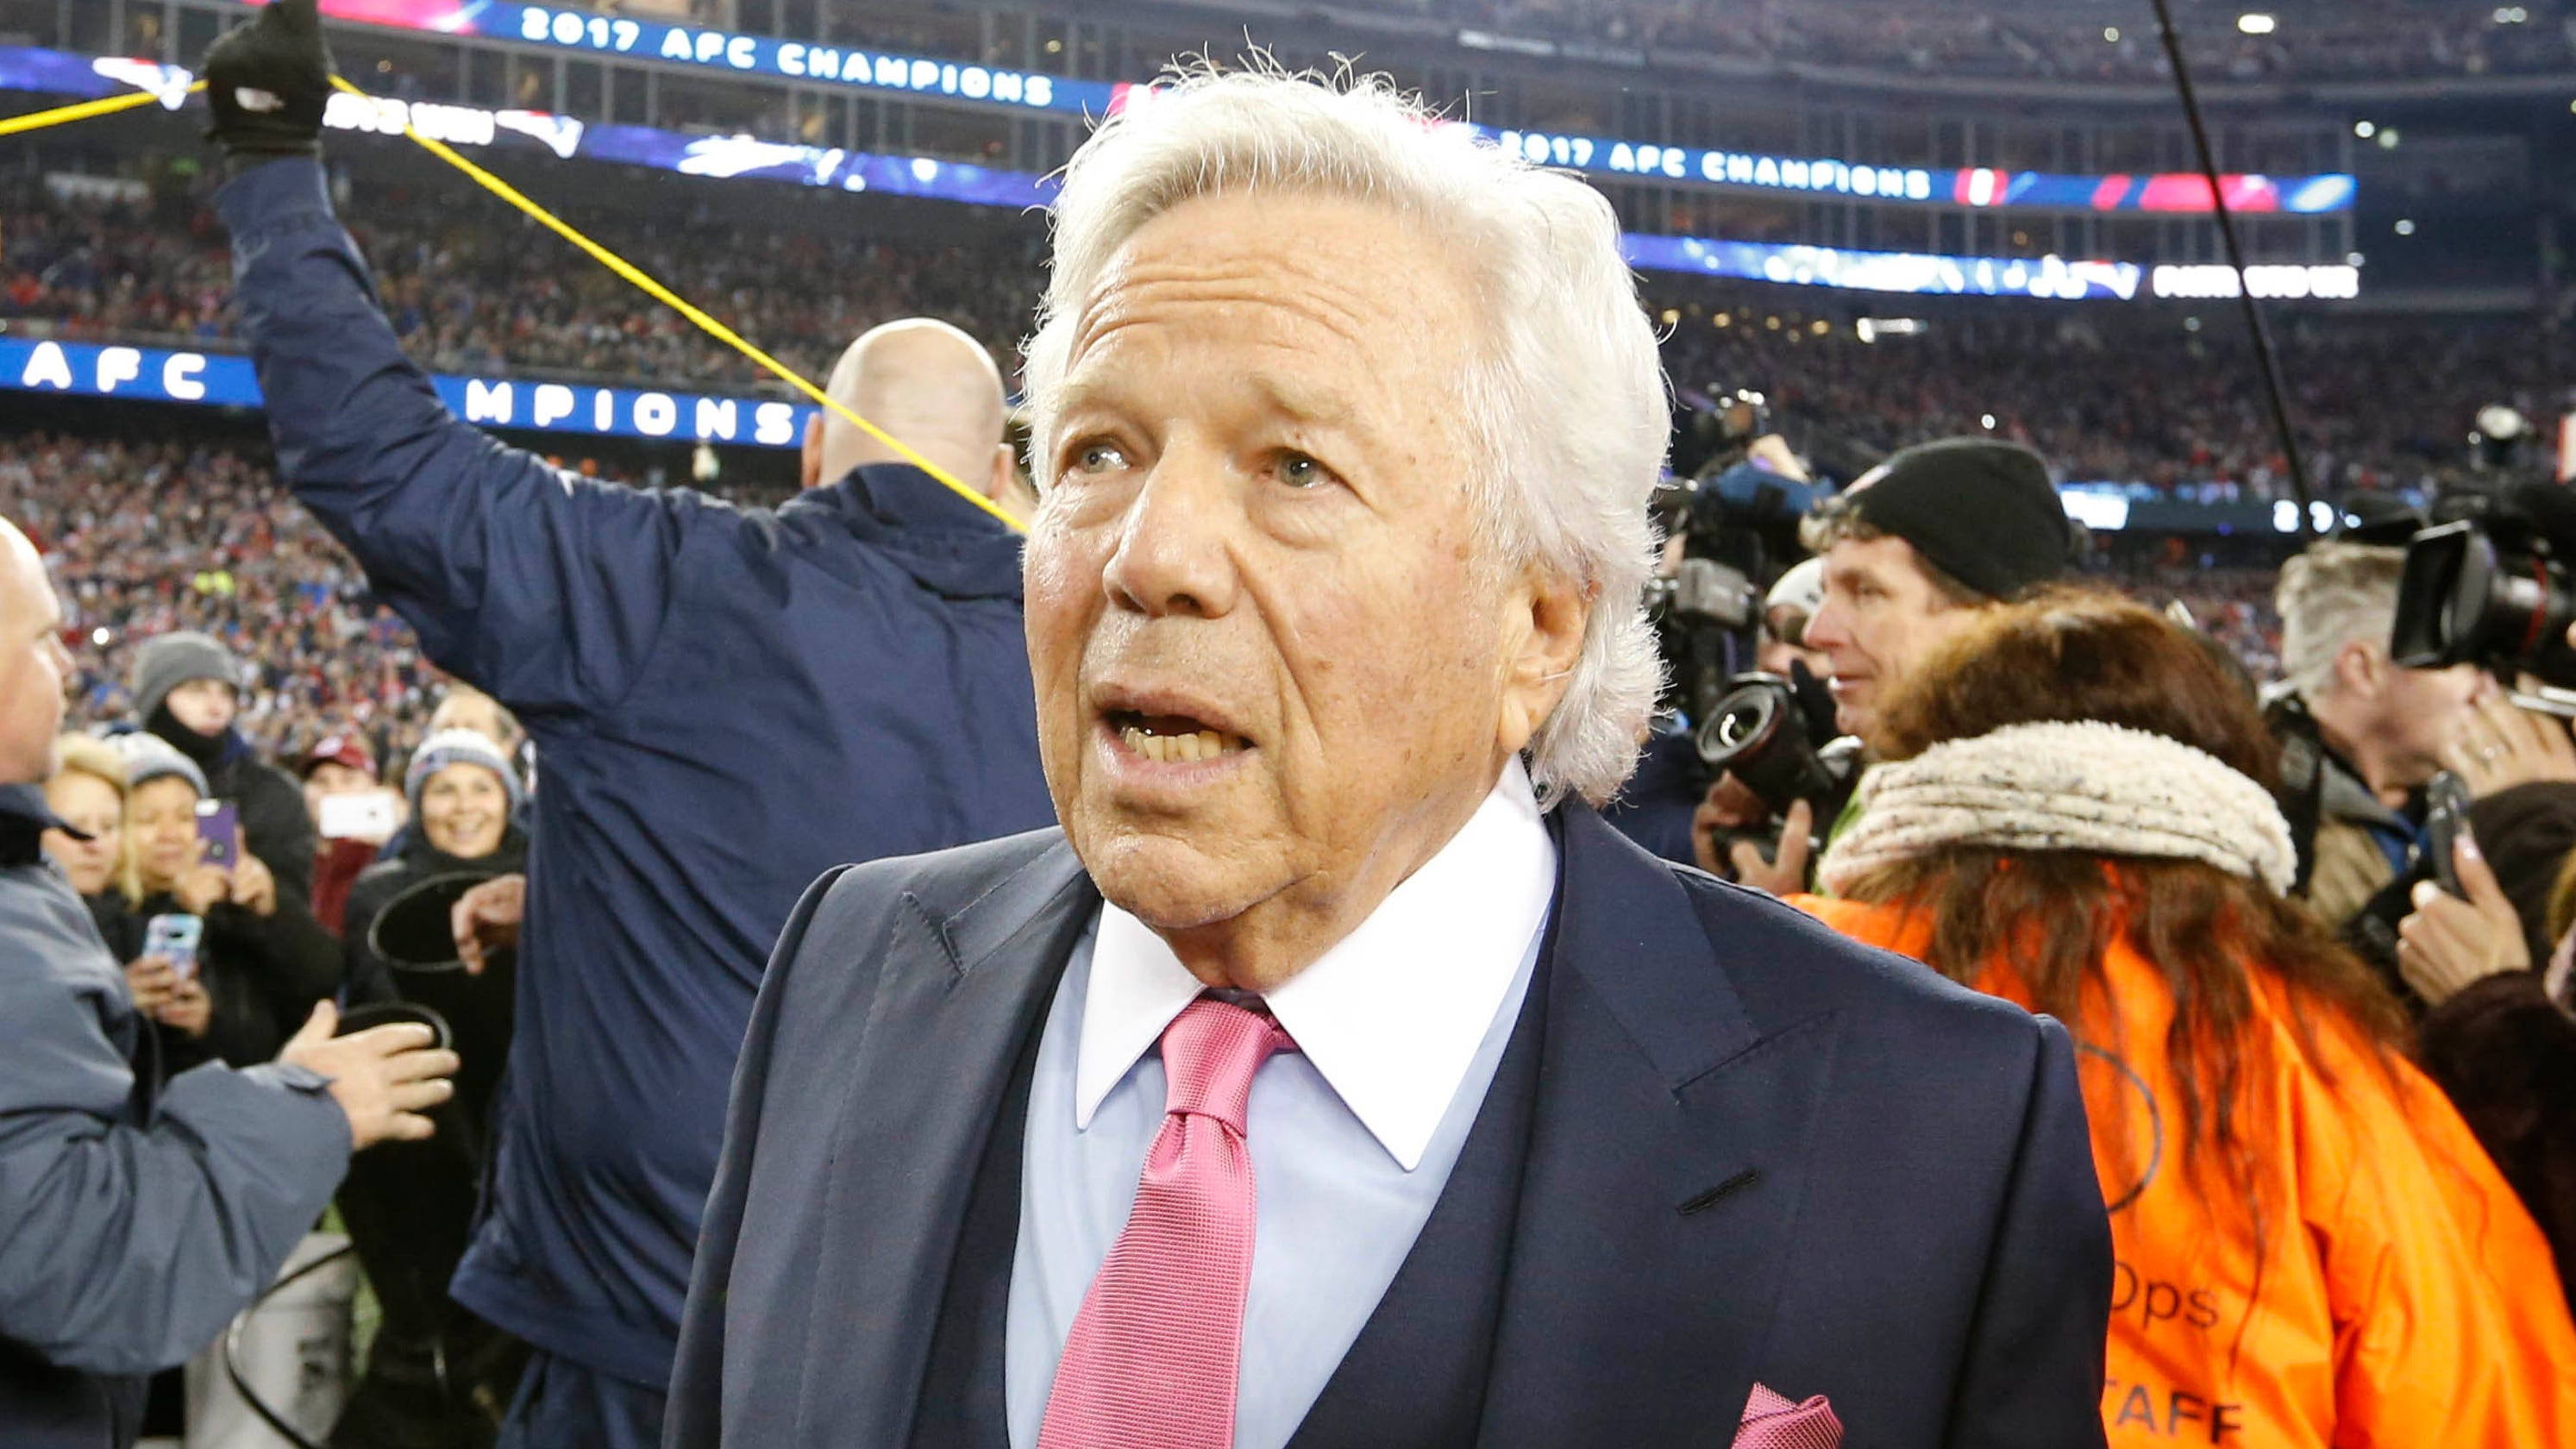 """Image result for SportsPulse: Trysta Krick explains why we should be thanking Robert Kraft following his alleged involvement in the solicitation of prostitution. USA TODAY CONNECT TWEET LINKEDIN COMMENT EMAIL MORE New England Patriots owner Robert Kraft pleaded not guilty on Tuesday to two misdemeanor counts of soliciting prostitution, according to court records. """"The Defendant, Robert Kraft, hereby pleads not guilty to all charges and requests a non-jury trial,"""" Jack A. Goldberger, Kraft's attorney, wrote in a filing – reviewed by USA TODAY Sports – made in Palm Beach County. Kraft was originally scheduled to be arraigned on April 24, although the hearing was moved to March 27. By entering a plea before the arraignment, Kraft avoids having to attend the arraignment in person. The charges against Kraft, 77, were linked to two alleged visits to the Orchids of Asia Day Spa in Jupiter, Florida, last month. The spa was under surveillance as part of multi-jurisdiction prostitution ring investigation. The second visit on Jan. 20 came hours before the Patriots played in the AFC title game in Kansas City. The Patriots issued the following statement last week: """"We categorically deny that Mr. Kraft engaged in any illegal activity. Because it is a judicial matter, we will not be commenting further."""" KRAFT INVESTIGATION: What's next for the Patriots owner? WHAT WE KNOW: Details on Robert Kraft's sex solicitation allegations WHO IS ROBERT KRAFT?: A look at the New England Patriots owner SPORTS, DELIVERED: Get the latest news right in your inbox Kraft faces a 10-day minimum sentence and a maximum of up to two years in jail if convicted on both charges, although it's expected he would be offered a pre-trial diversion program by prosecutors. Prosecutors could agree to drop one of the charges as part of a plea deal, which would allow Kraft to avoid any jail time. Kraft's decision to seek a bench trial – where a judge rules on guilt or innocence instead of a jury – isn't unusual, esp"""